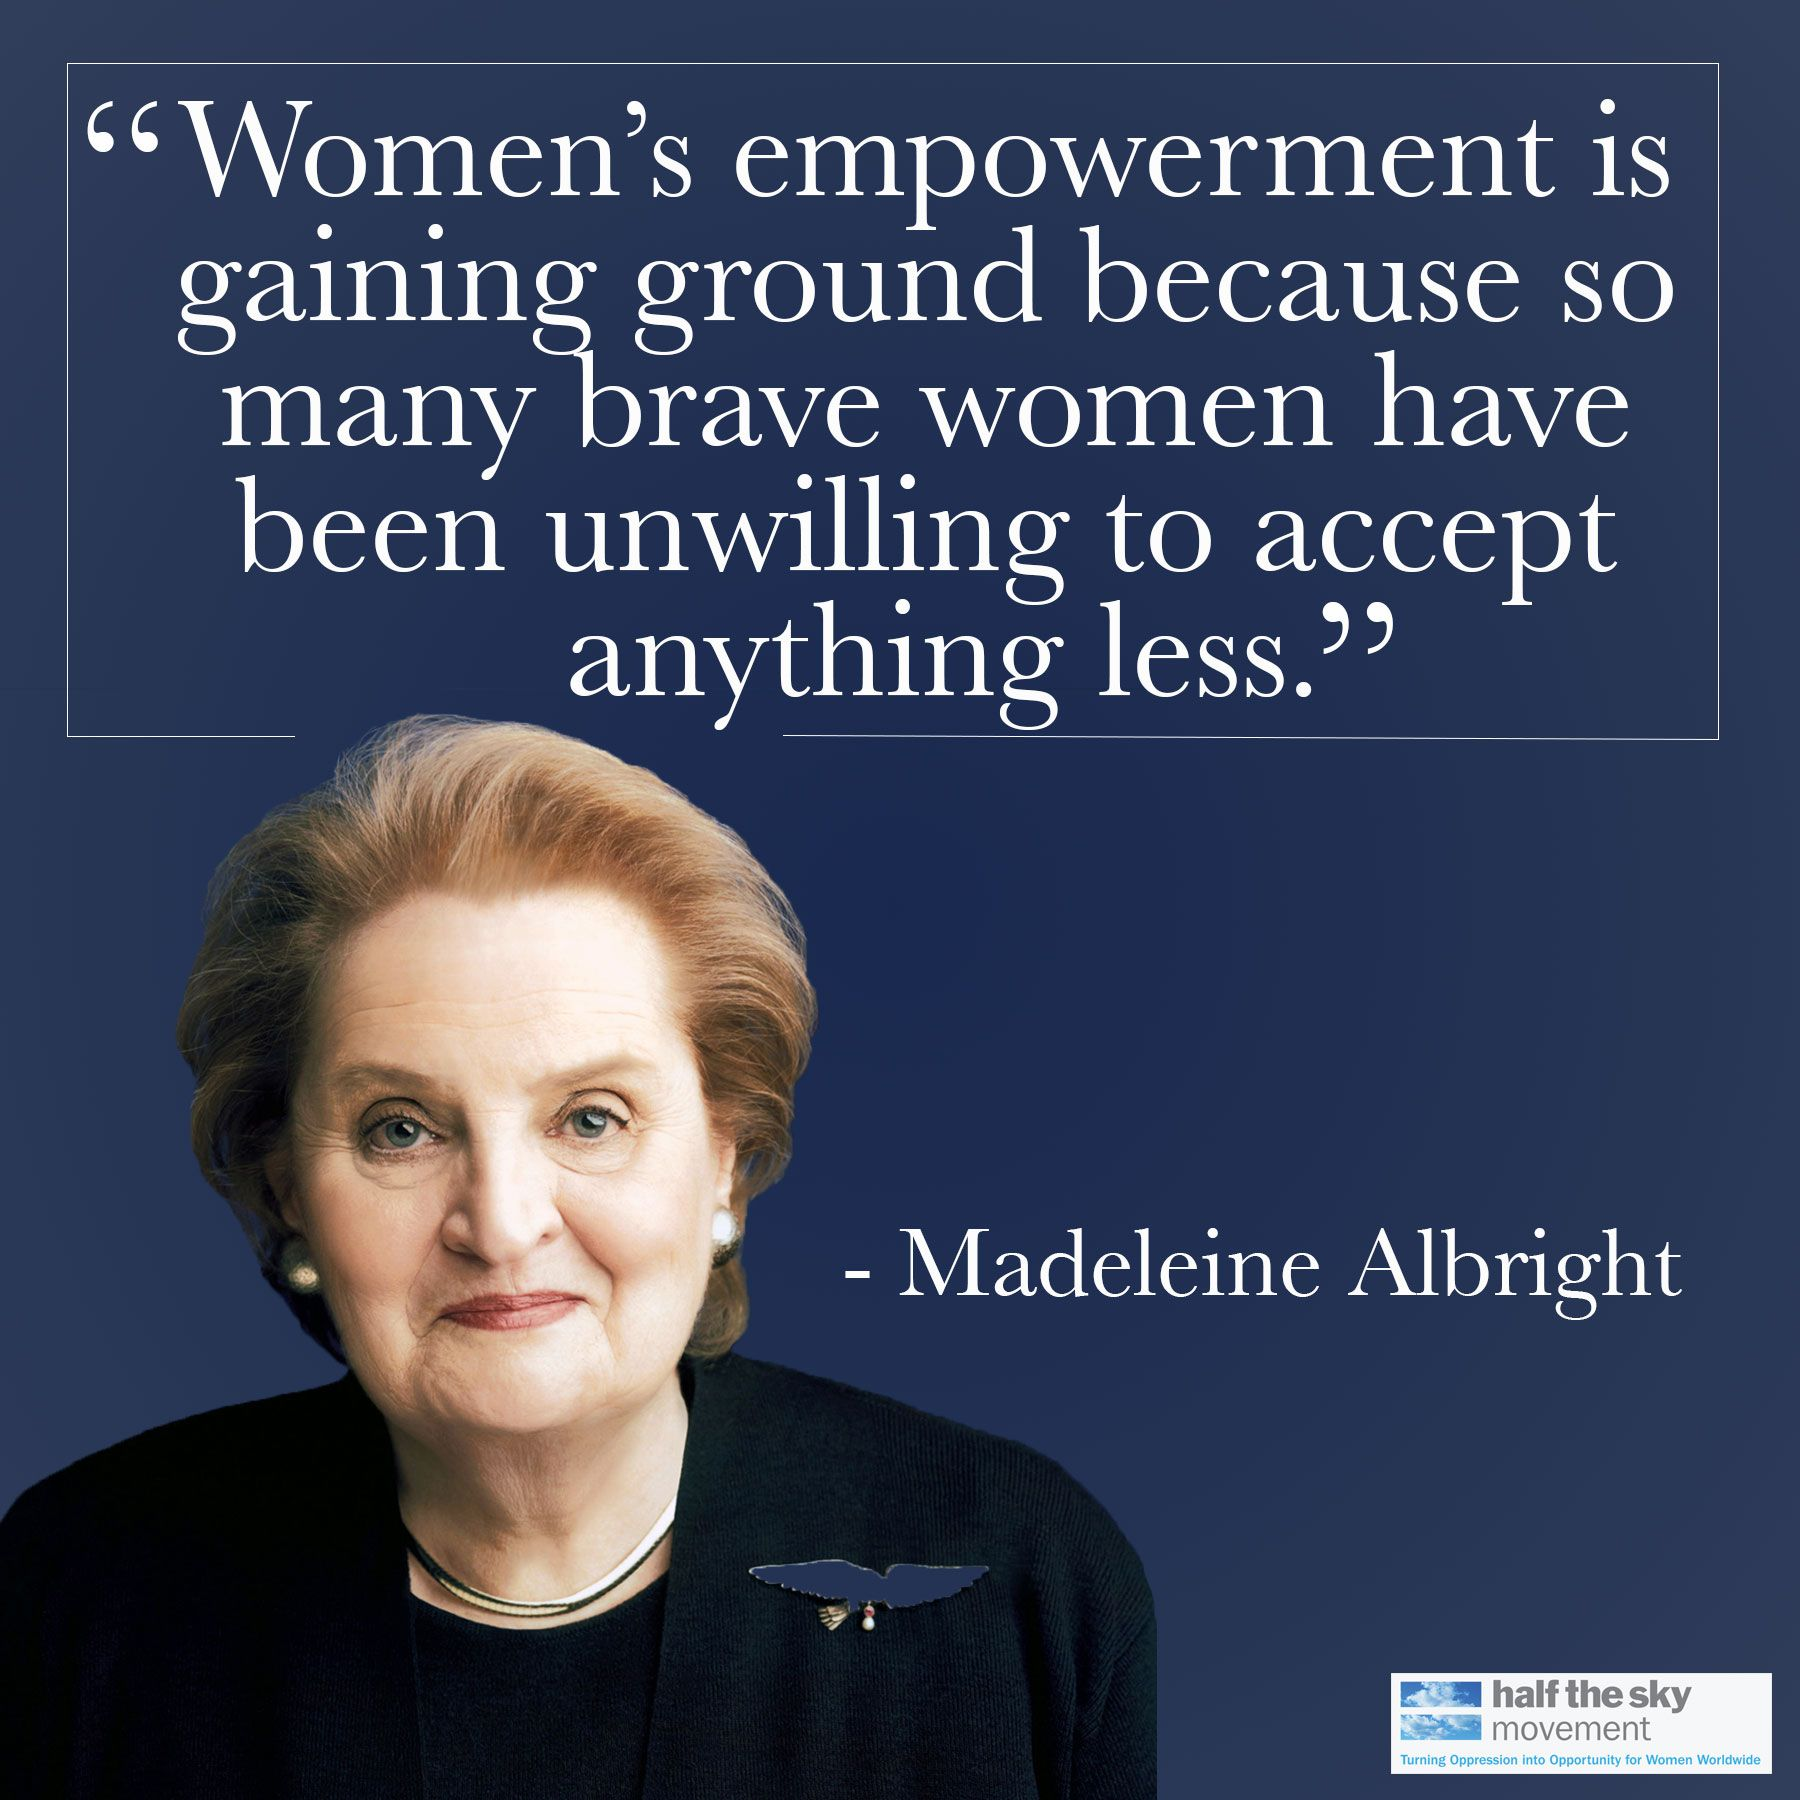 speech on women empowerment This essay on women empowerment highlights the meaning and importance of women empowerment in india and the current status of women empowerment in india.